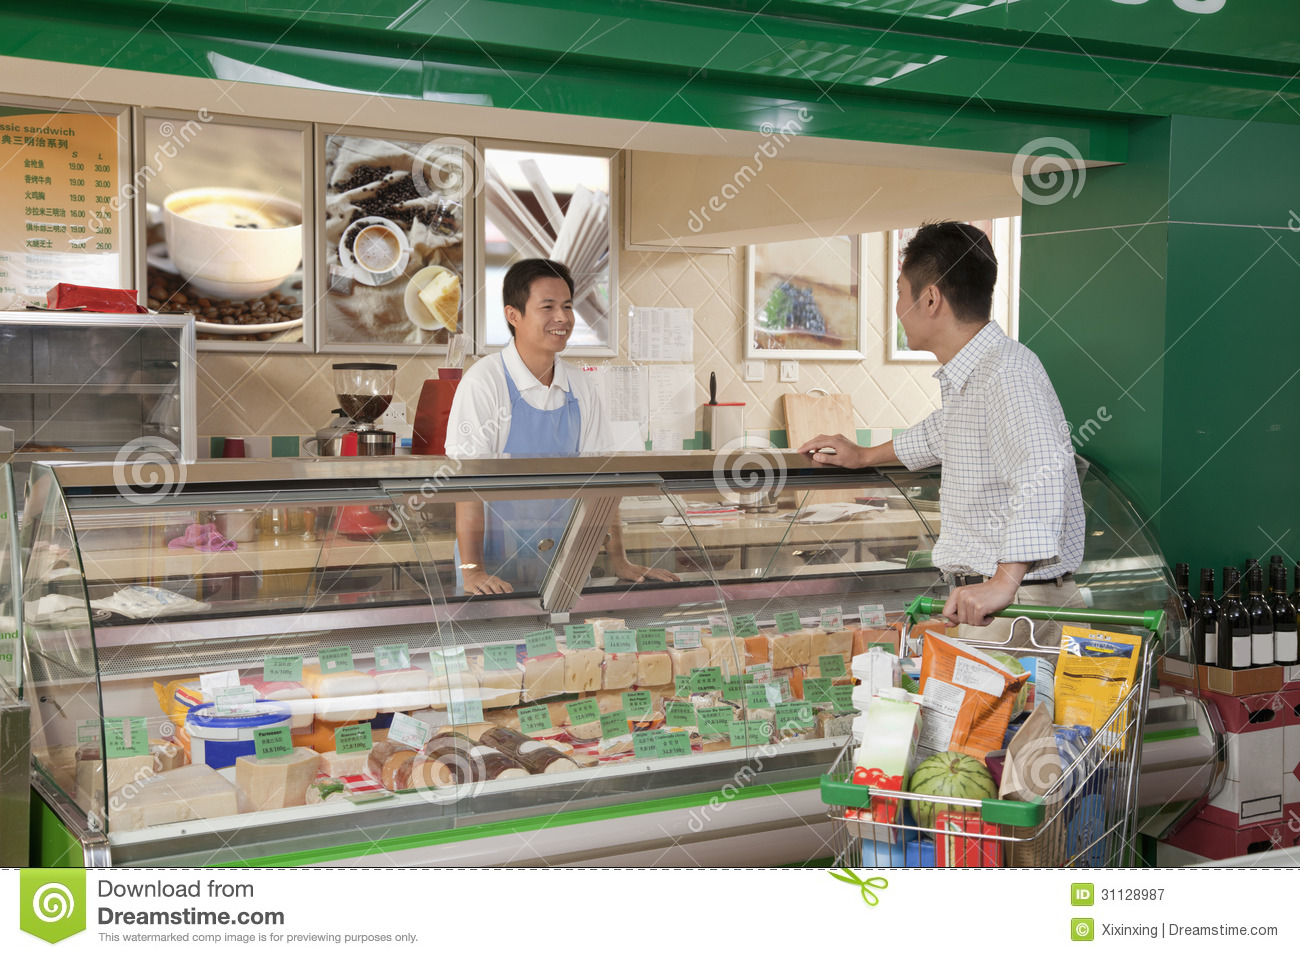 s clerk smiling and assisting man at the deli counter in s clerk smiling and assisting man at the deli counter in supermarket